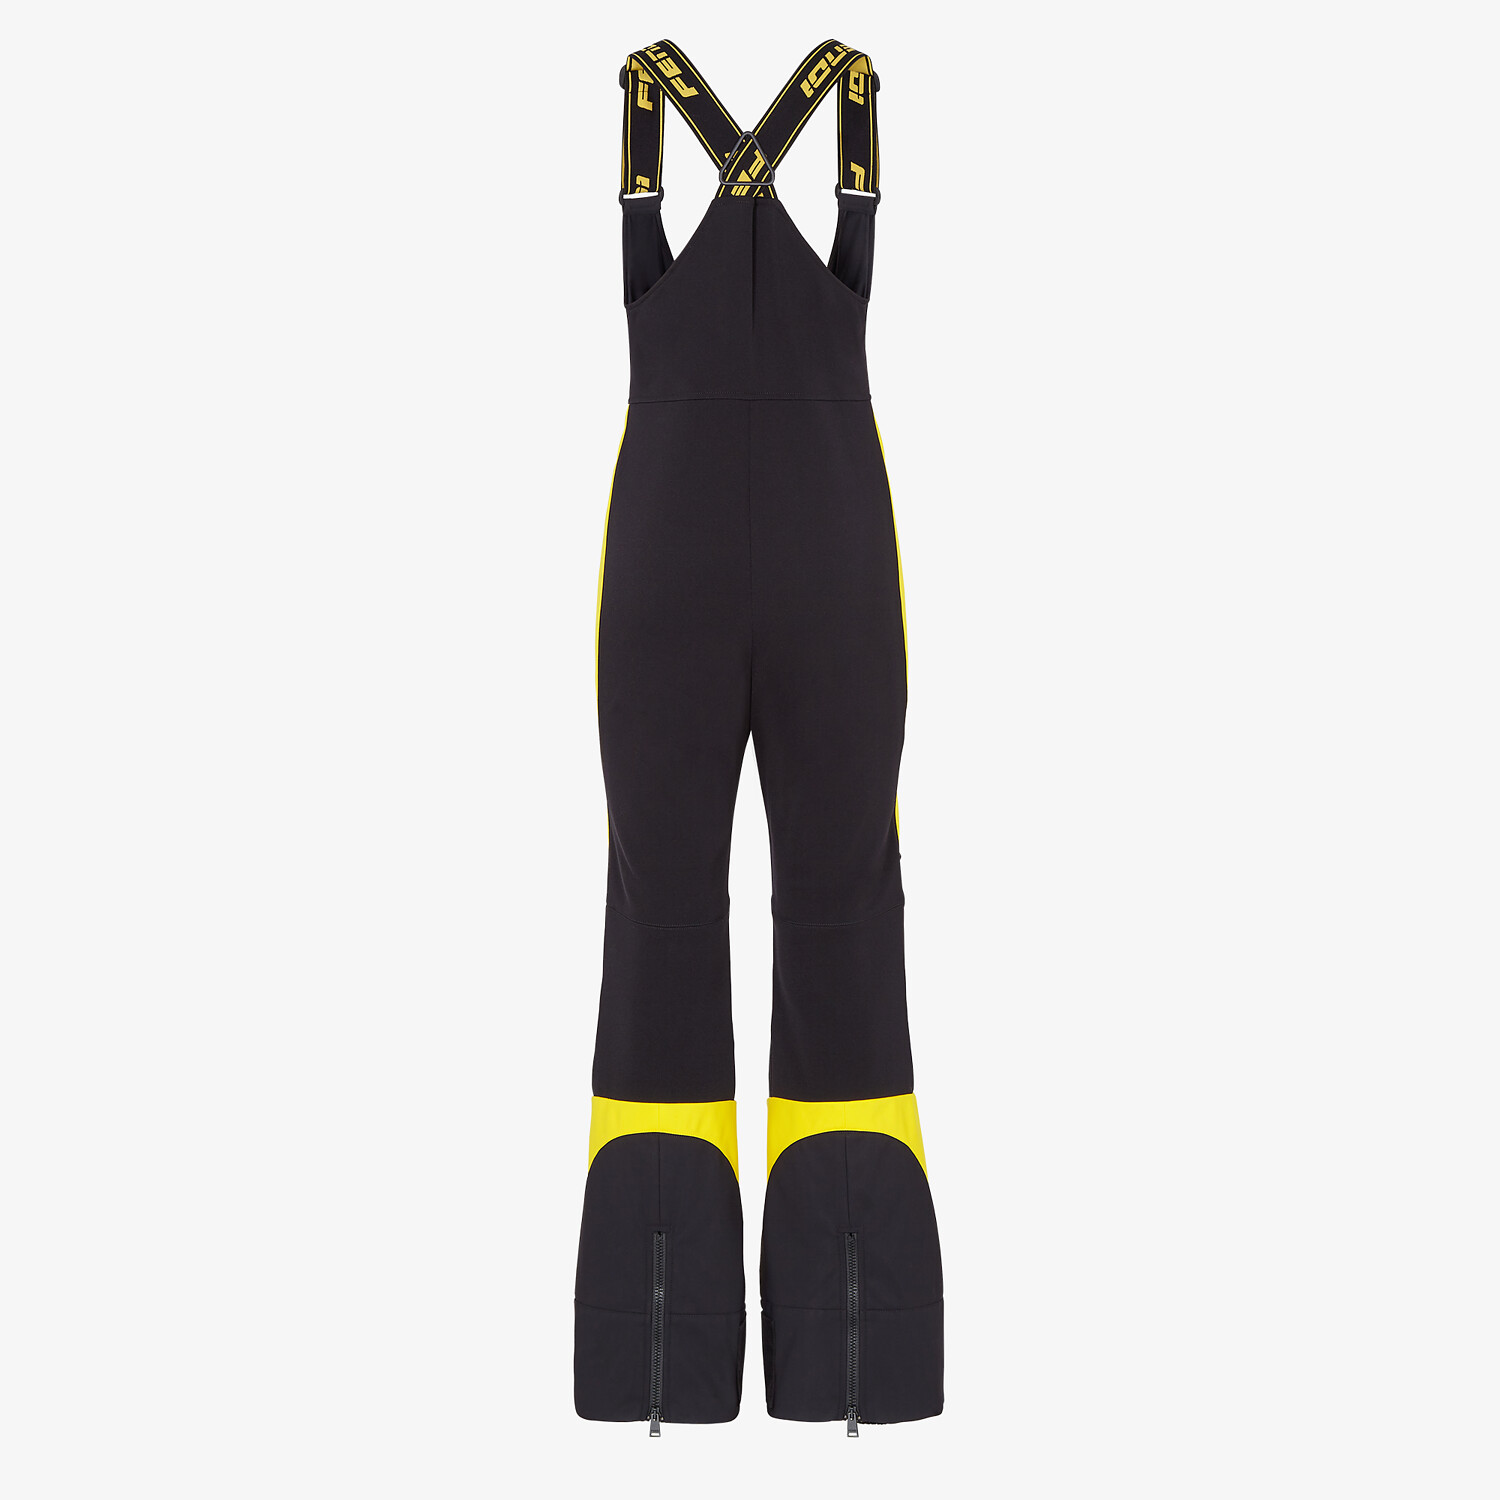 FENDI SKI SUIT - Black tech nylon ski suit - view 2 detail